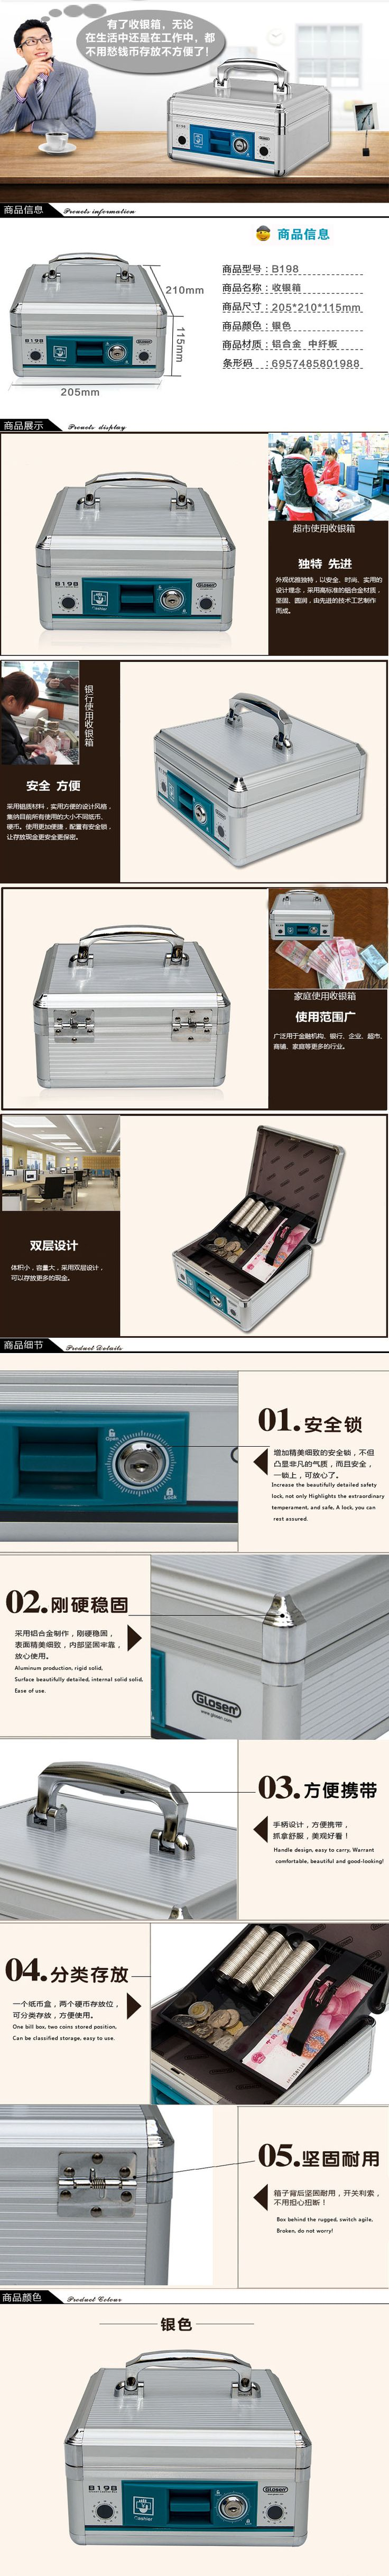 best images about cashier box for home use bank super market glosen elegant cashier box widely used in super markets banks home use